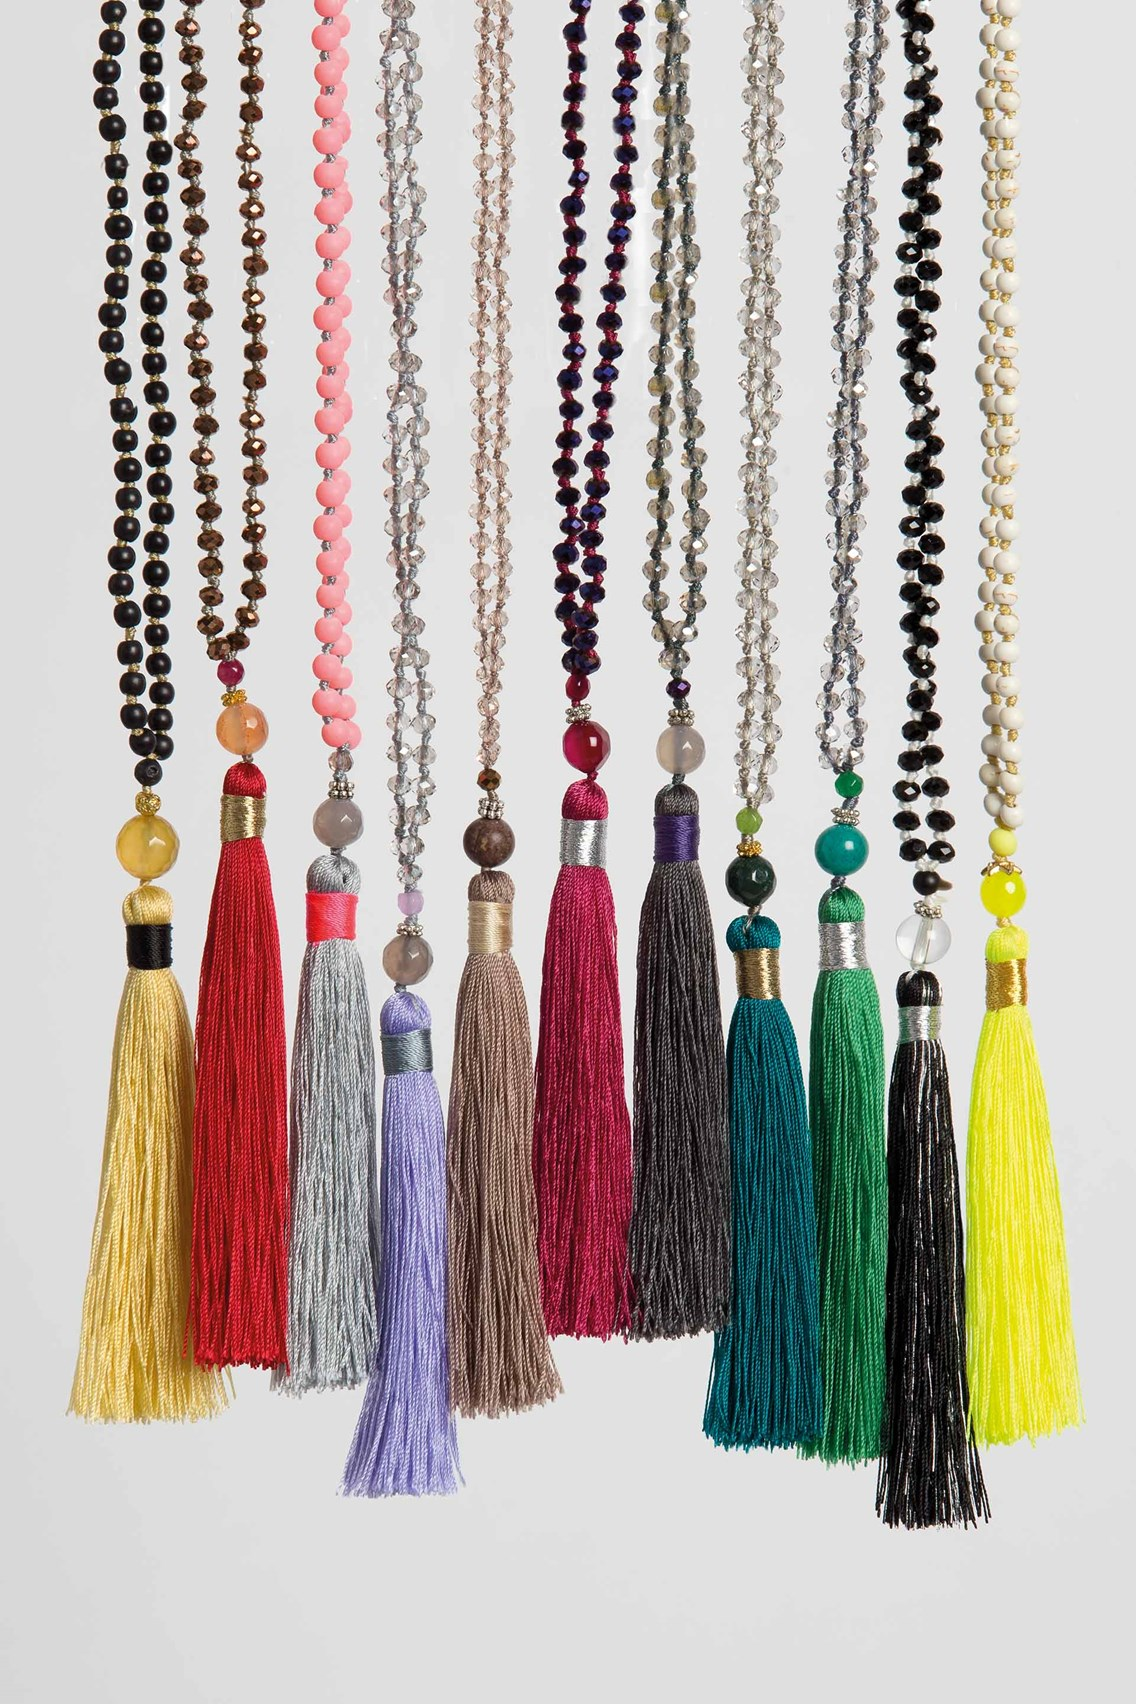 in front tassel beads necklace turk trina bloom pin